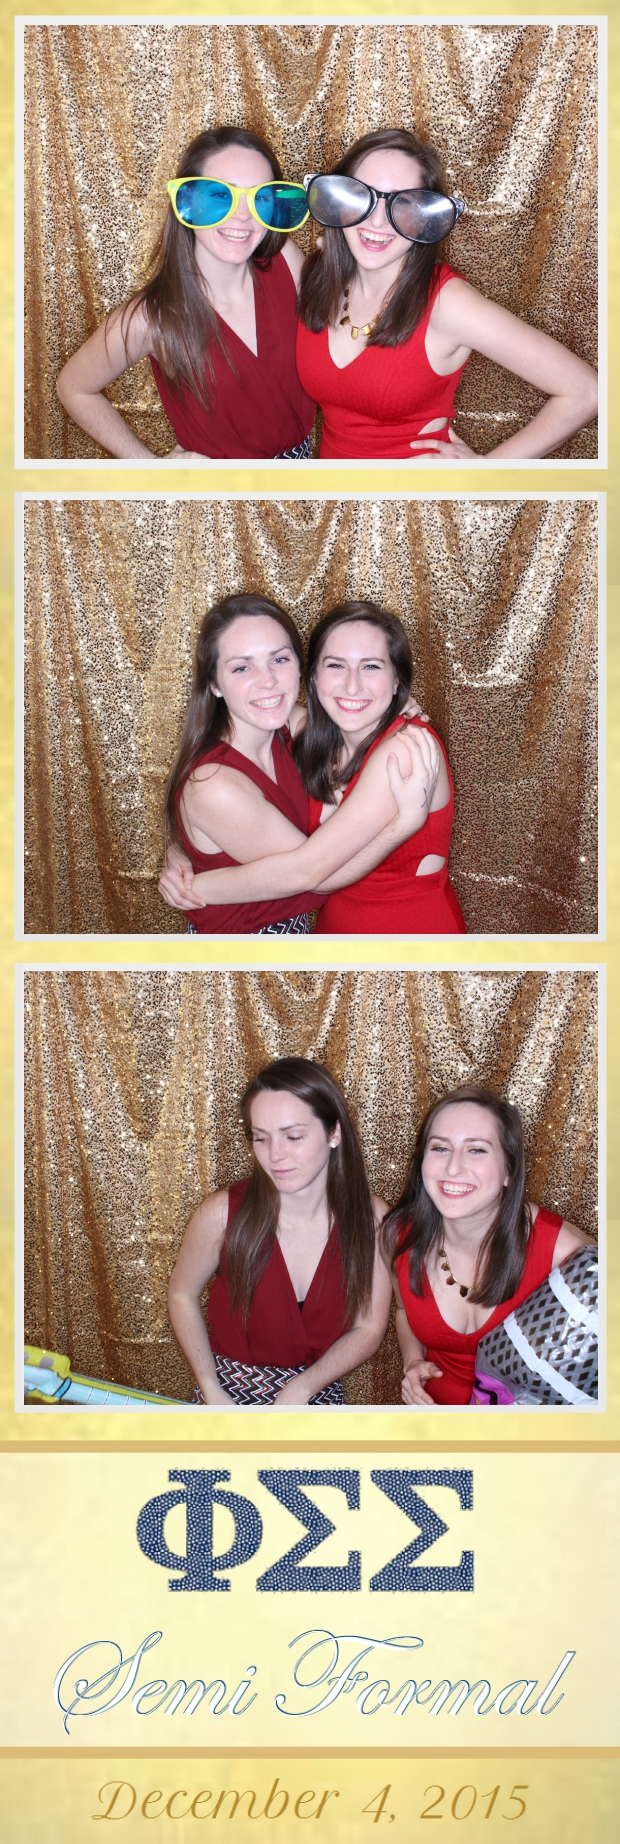 Guest House Events Photo Booth Phi Sigma Sigma Semi Formal (50).jpg